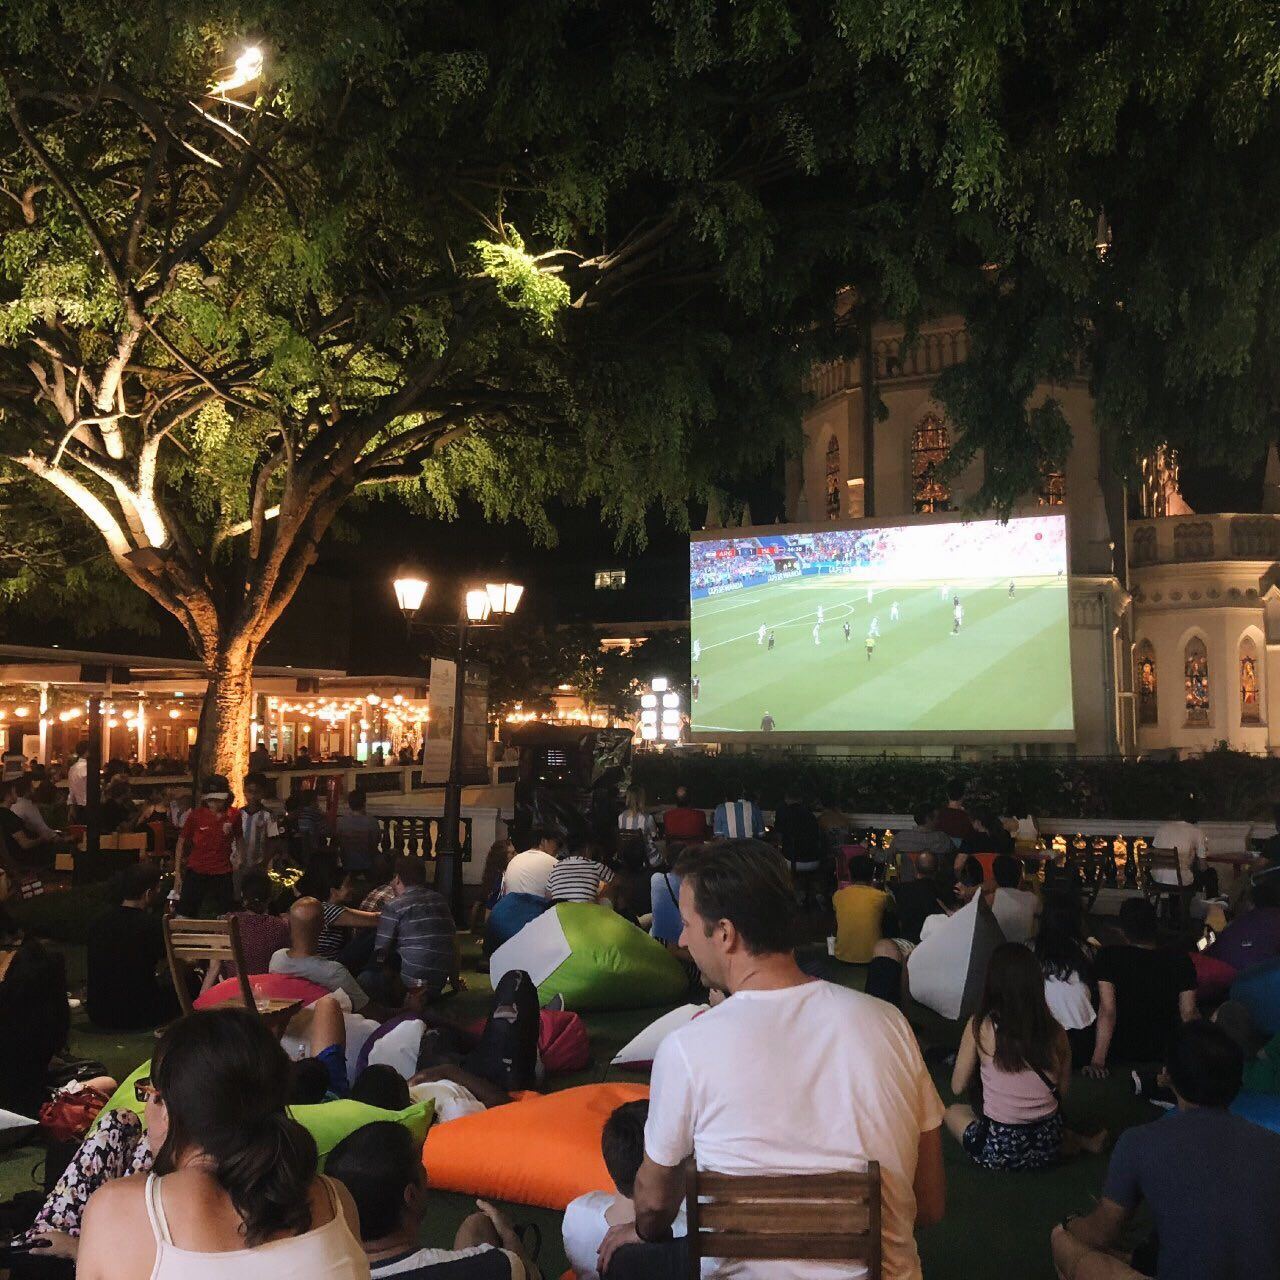 Chijmes-Venues-To-Watch-World-Cup-Singapore-venuerific-blog